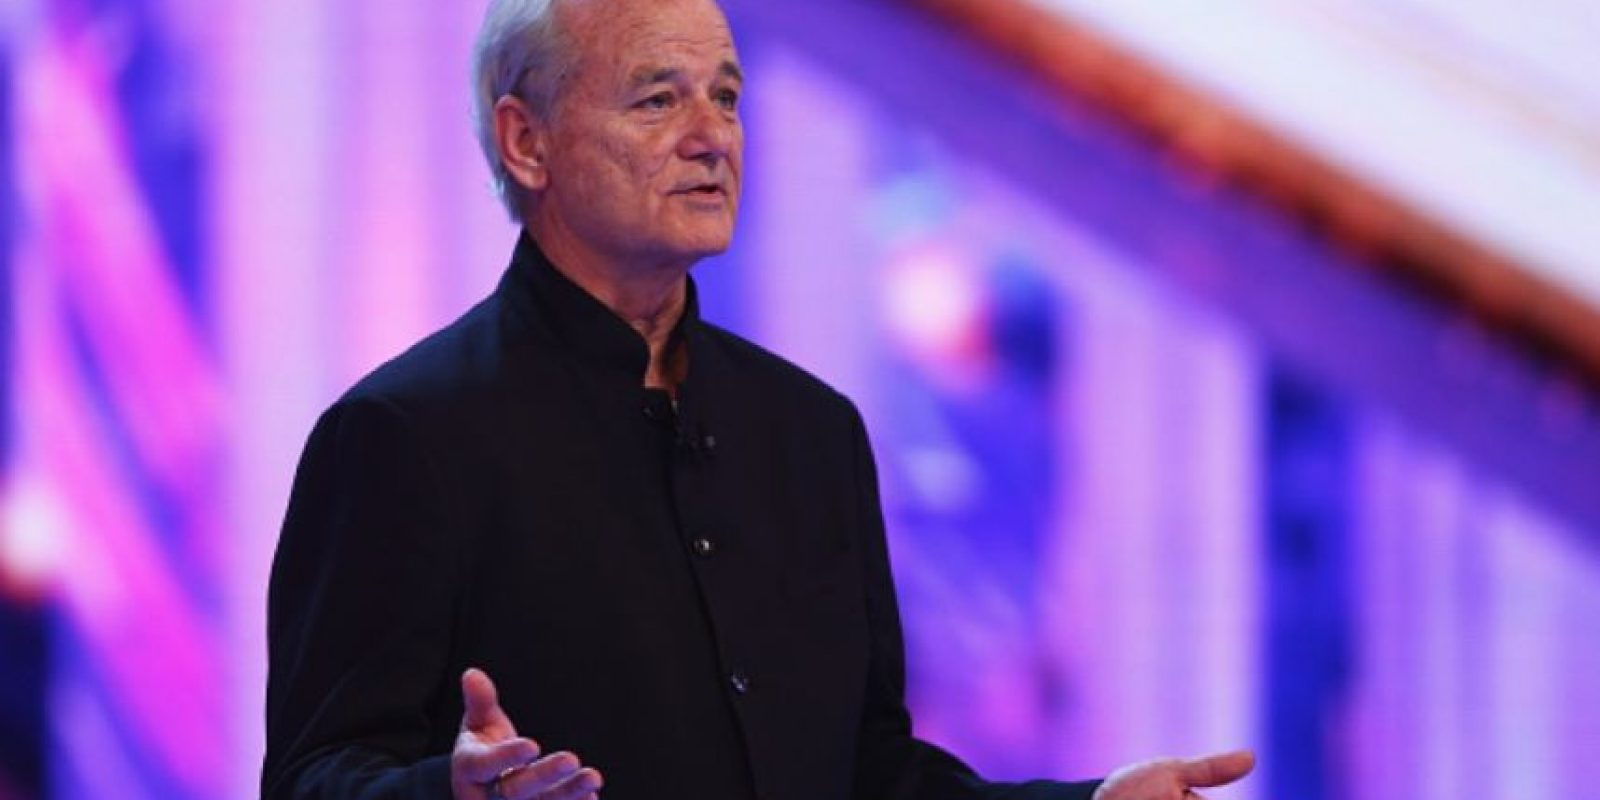 4. Bill Murray Foto: Getty Images